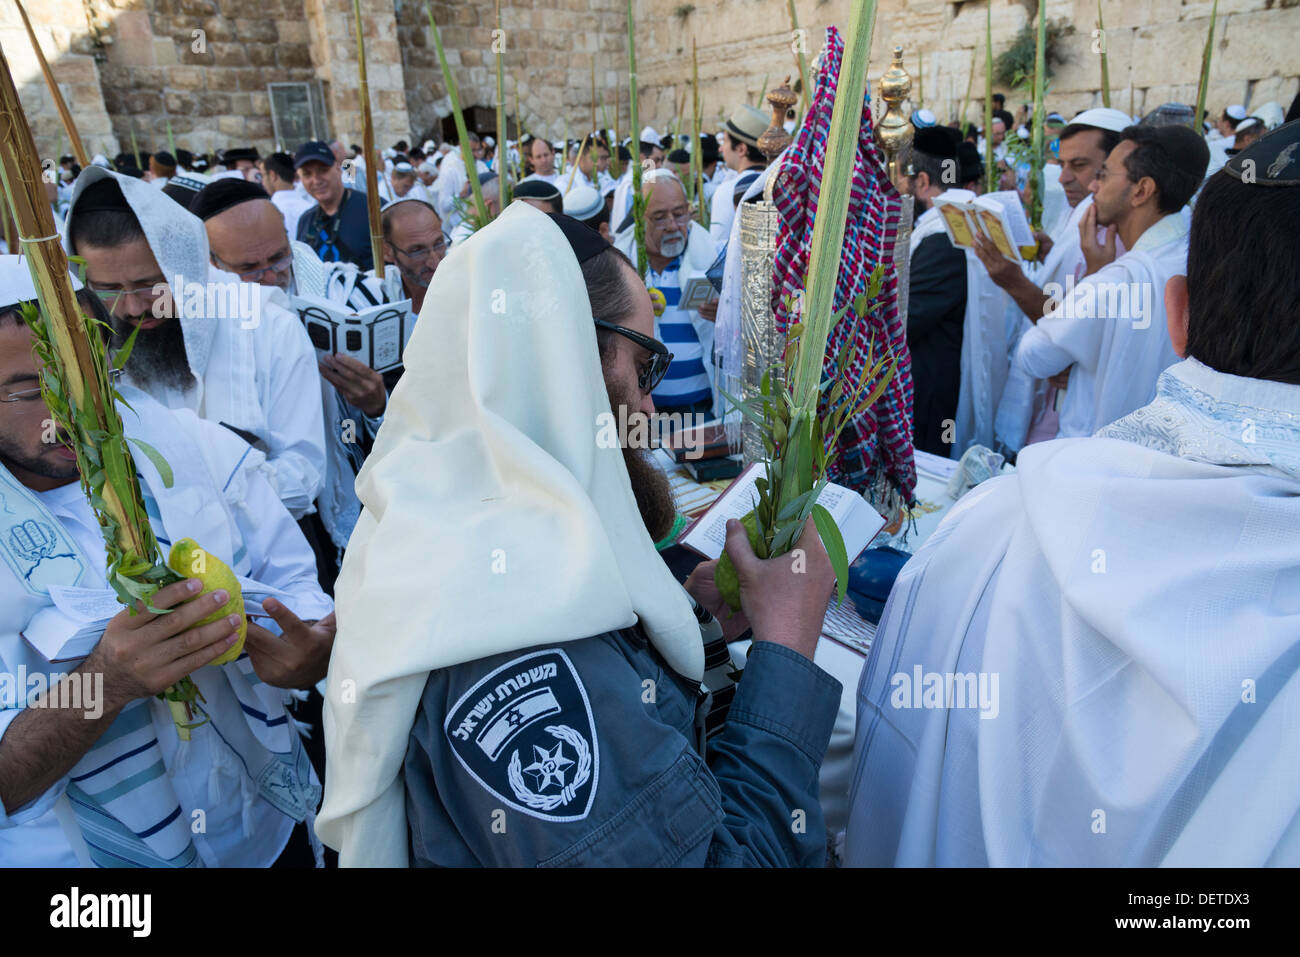 Israeli Jewish policeman praying with a Lulav during the Sukkot Jewish festival. Western Wall. Jerusalem Old City. Israel. - Stock Image